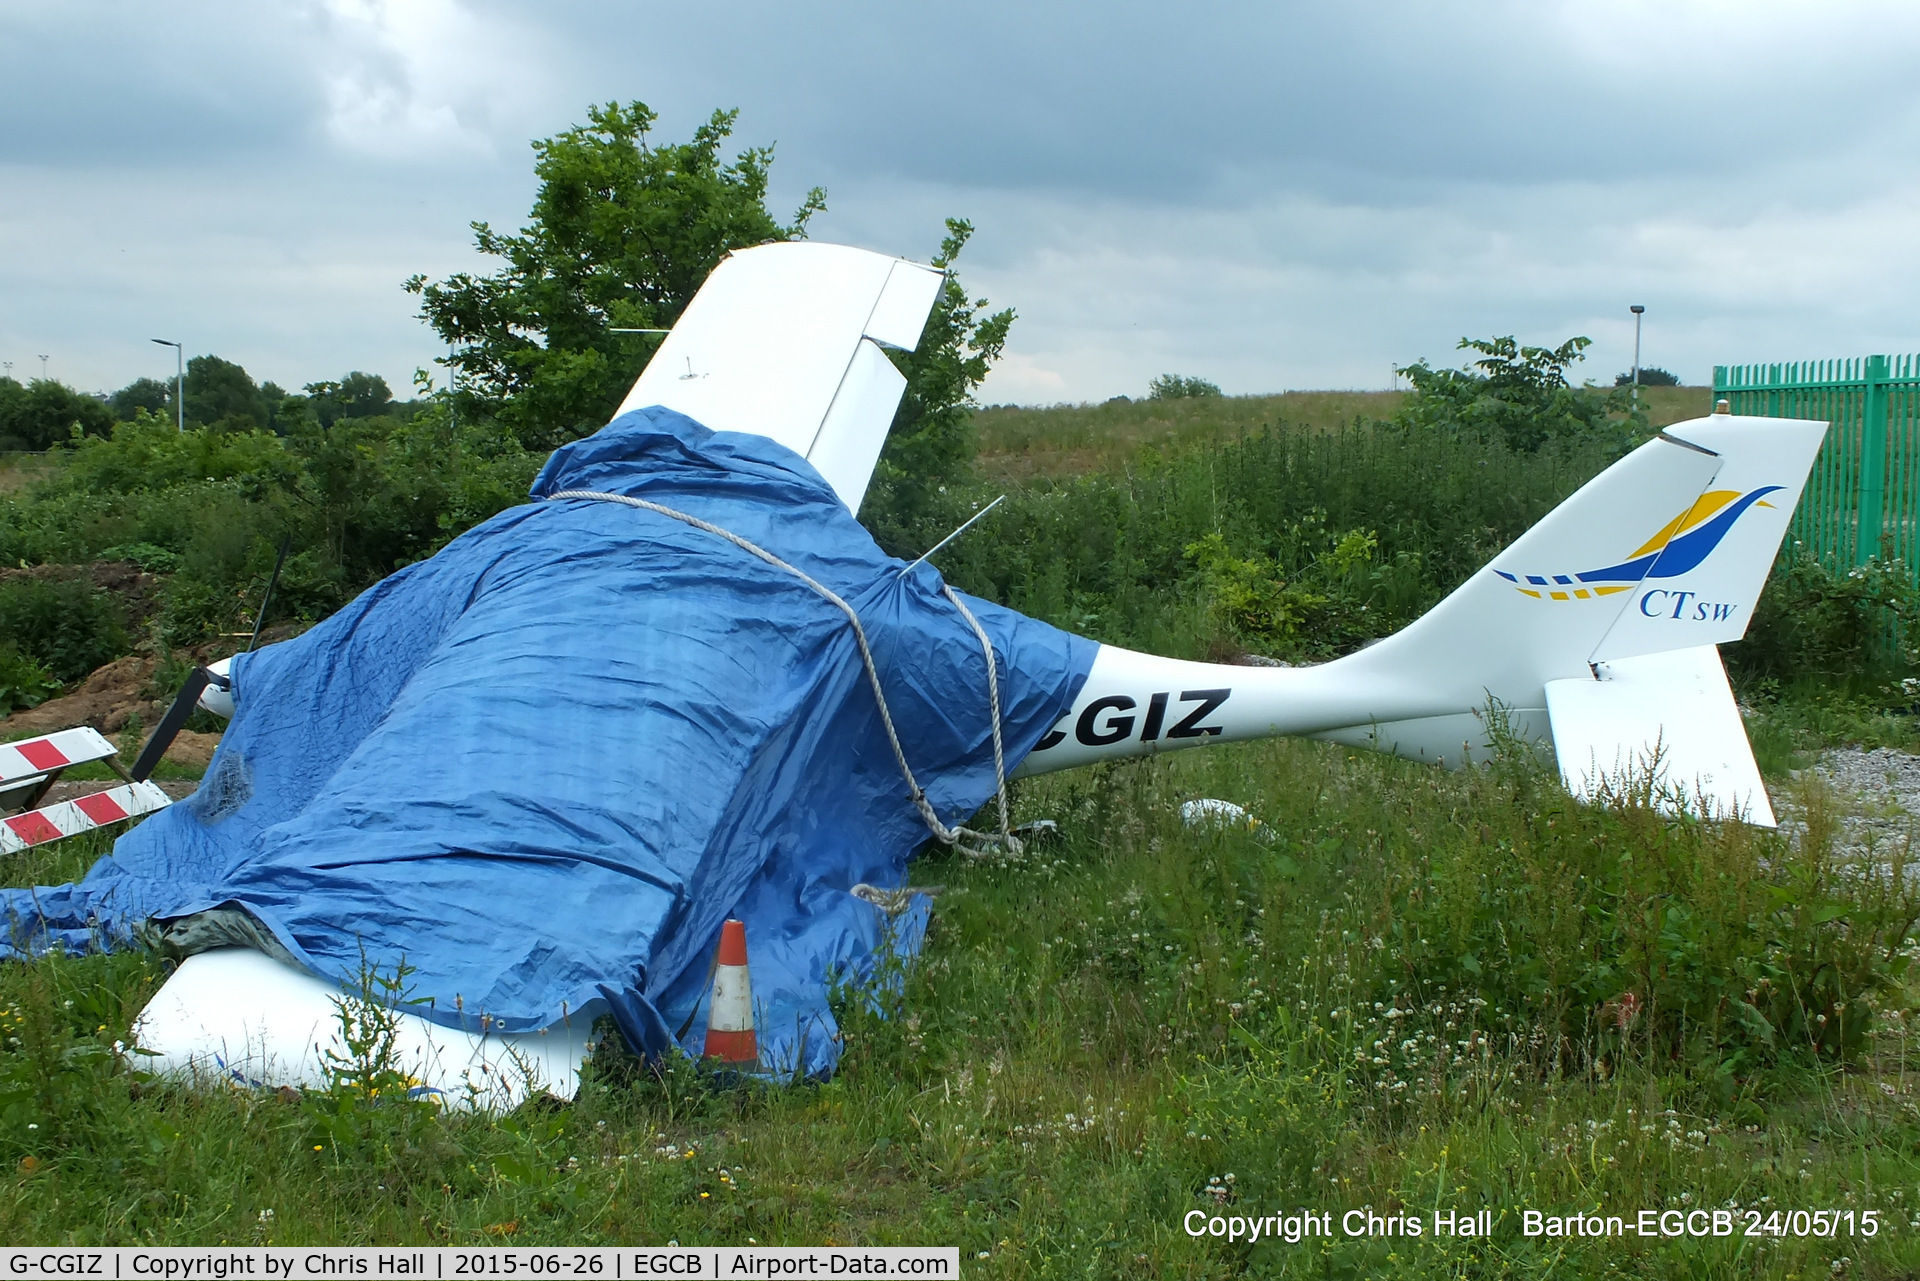 G-CGIZ, 2010 Flight Design CTSW C/N 8512, wreackage of CGIZ which crashed on landing at Barton